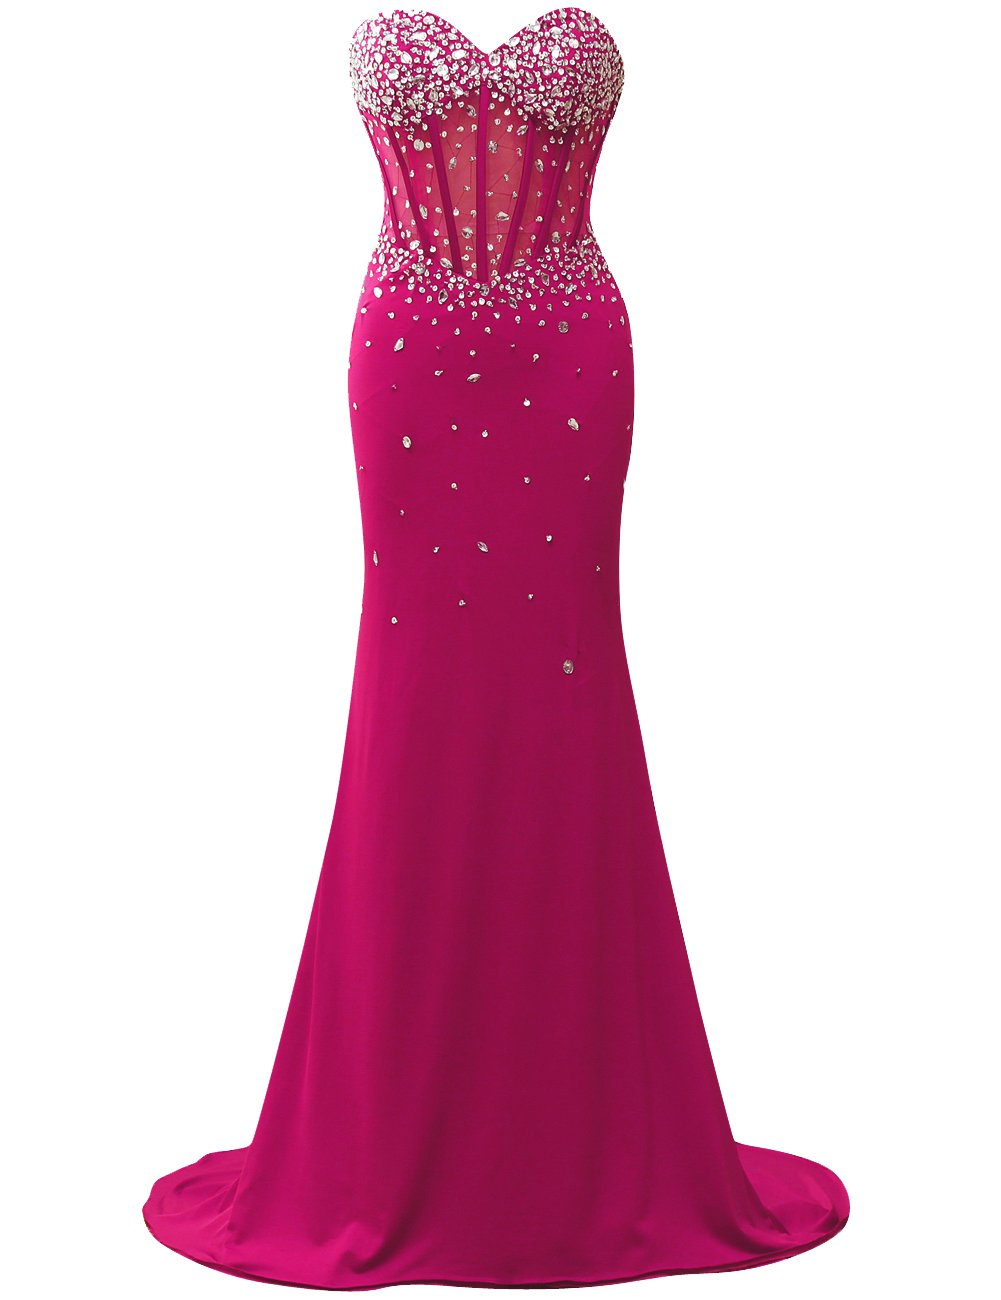 JAEDEN Sweetheart Corset Style Bodice Strapless Crystals Evening Gown Prom Dress Hot Pink US16W